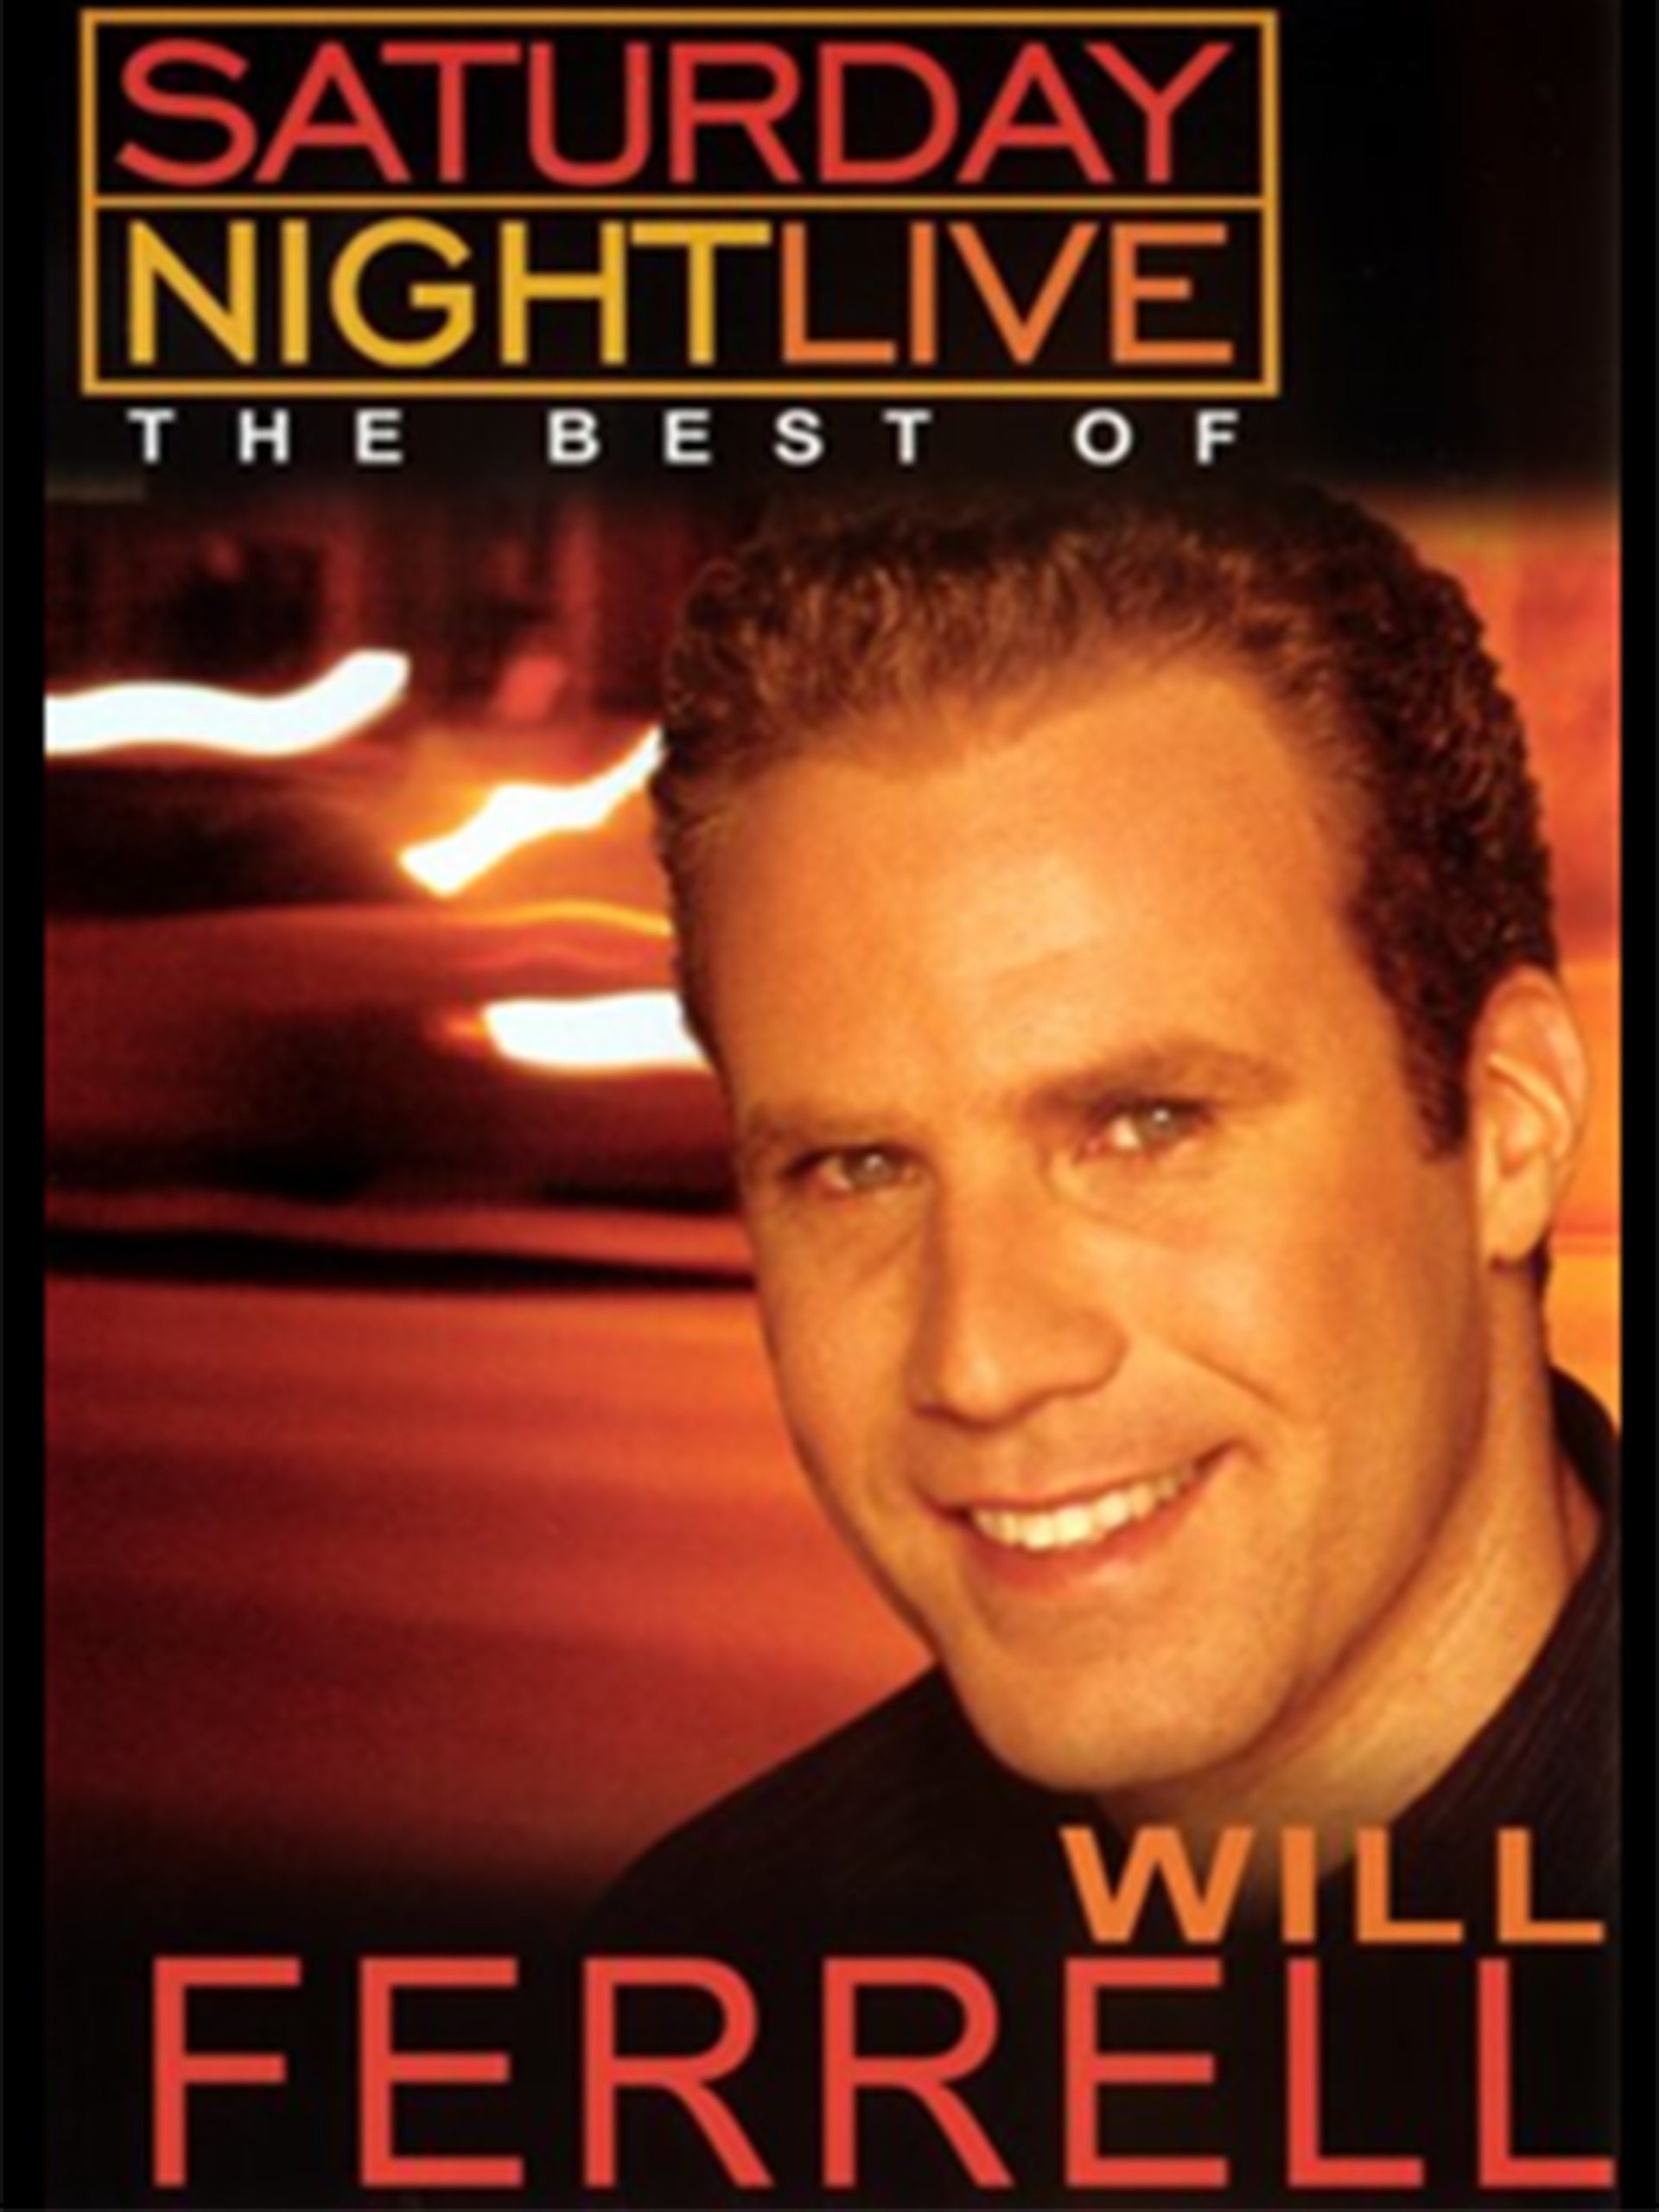 Watch Saturday Night Live Snl The Best Of Will Ferrell Vol 1 Prime Video